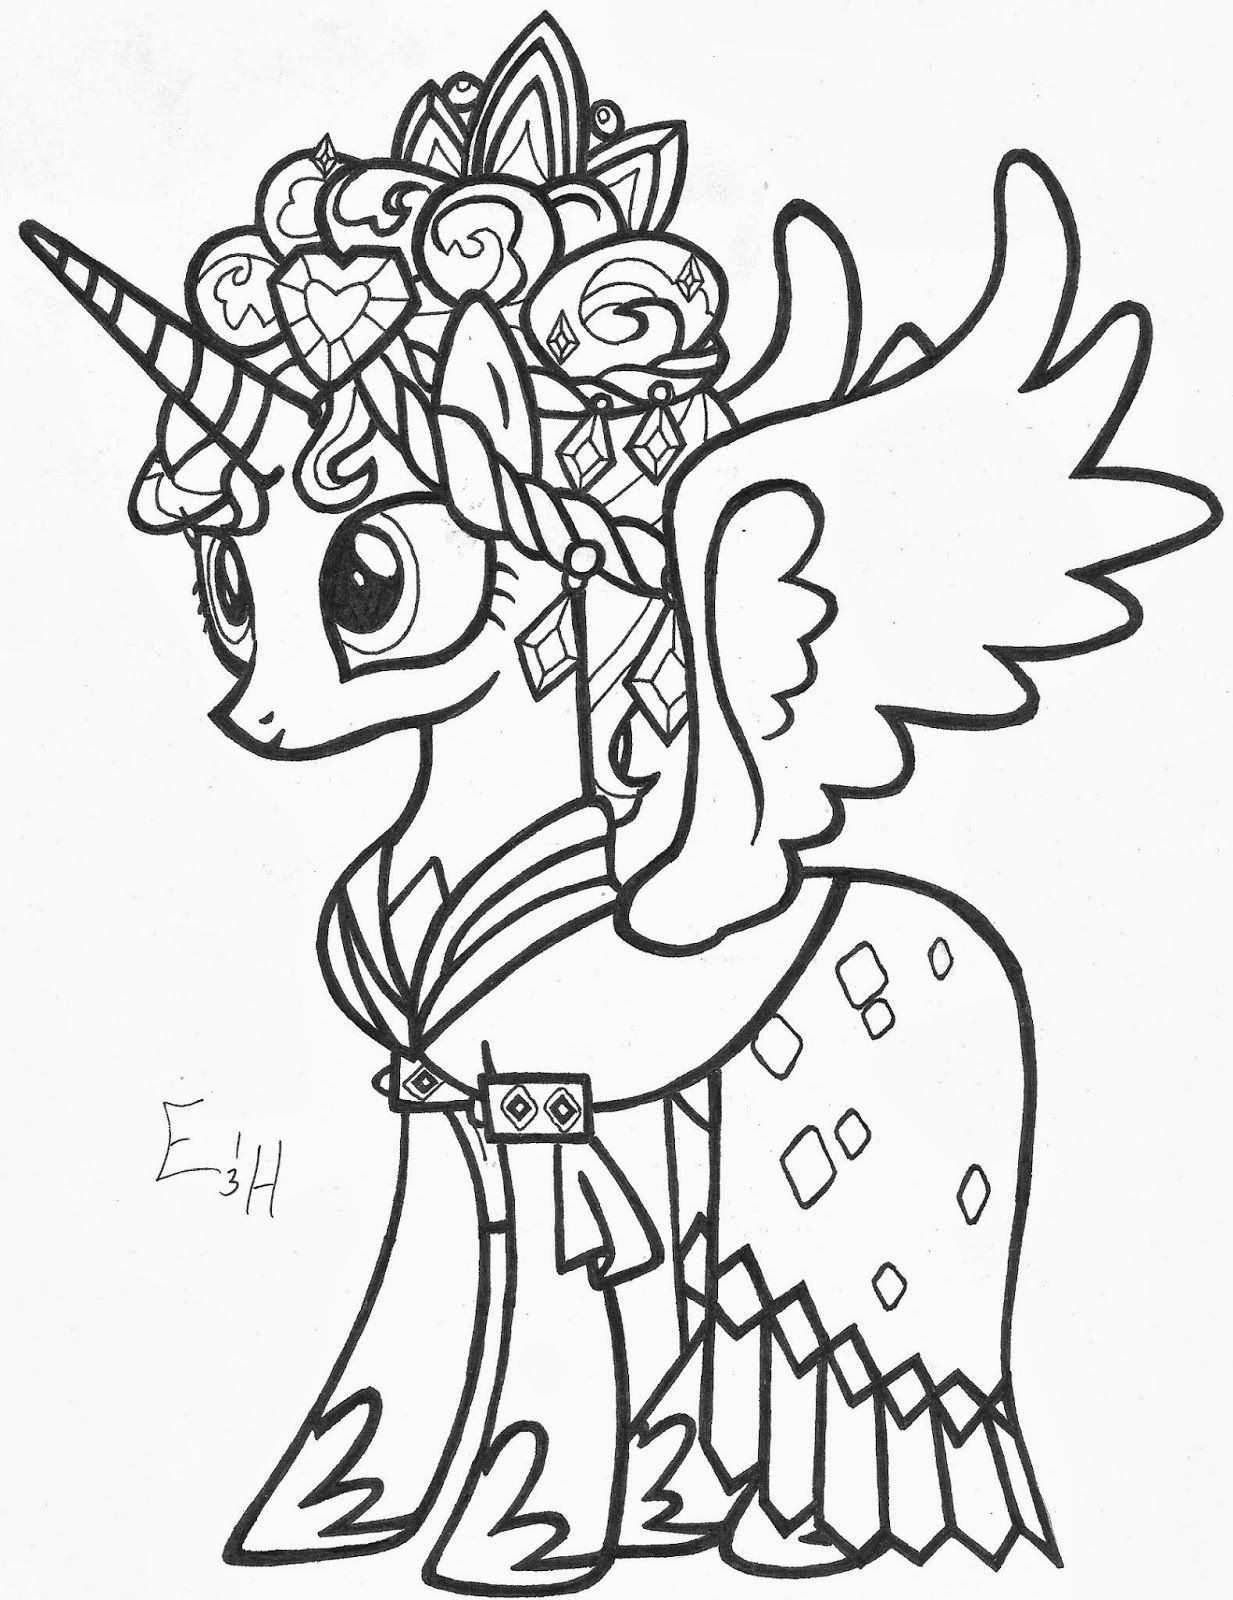 Princess Cadence Coloring Page Best Of My Little Pony Coloring Pages Princess Cadence Wedd In 2020 Princess Coloring Pages My Little Pony Coloring Horse Coloring Pages